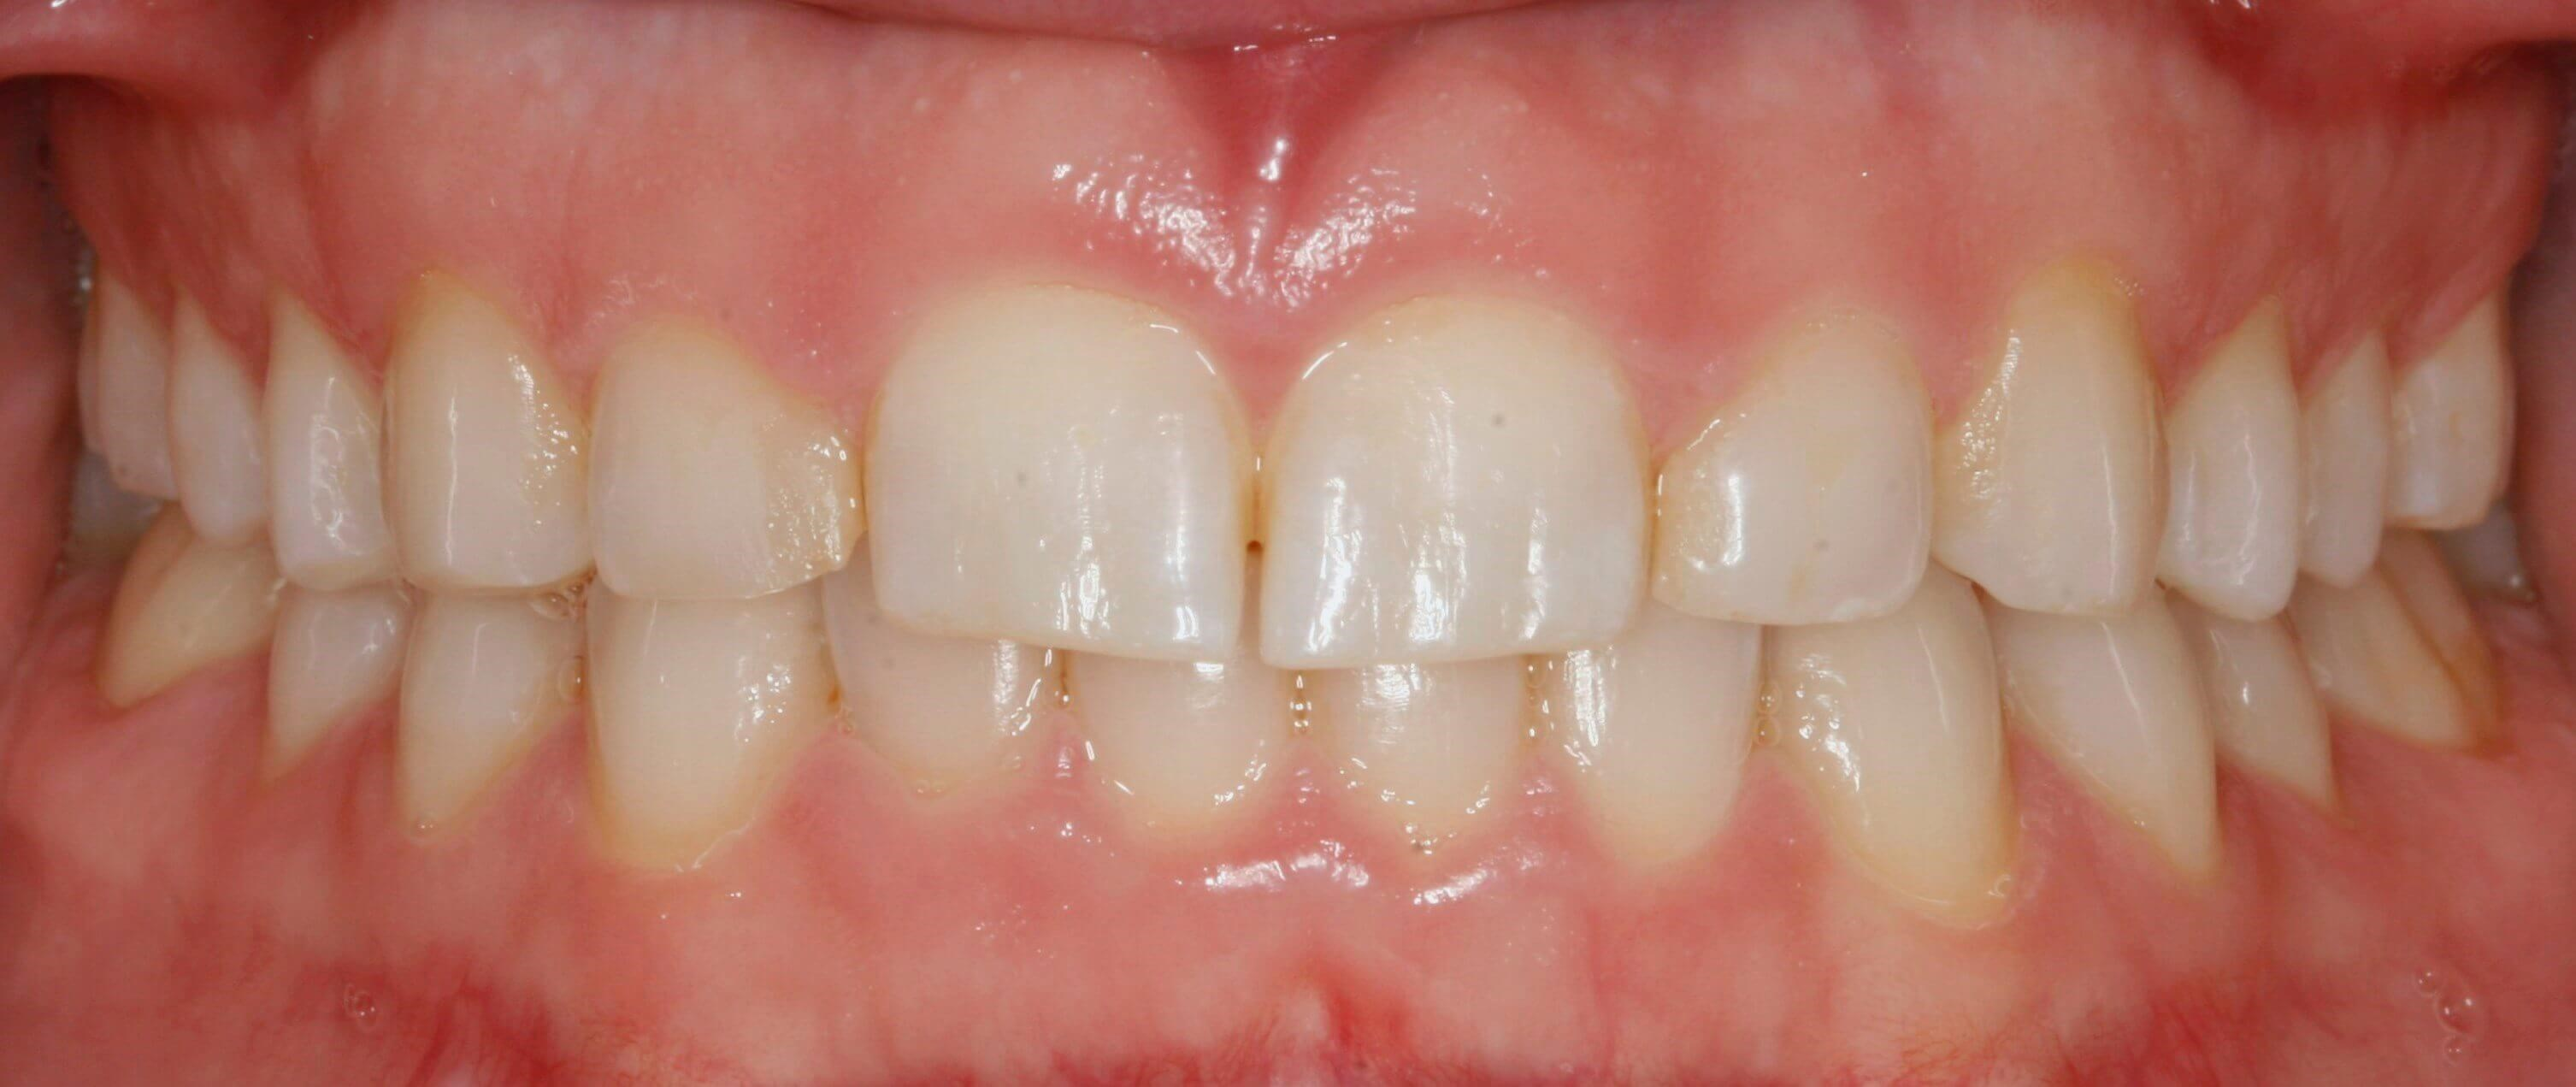 Crown Lengthening and Veneers Before